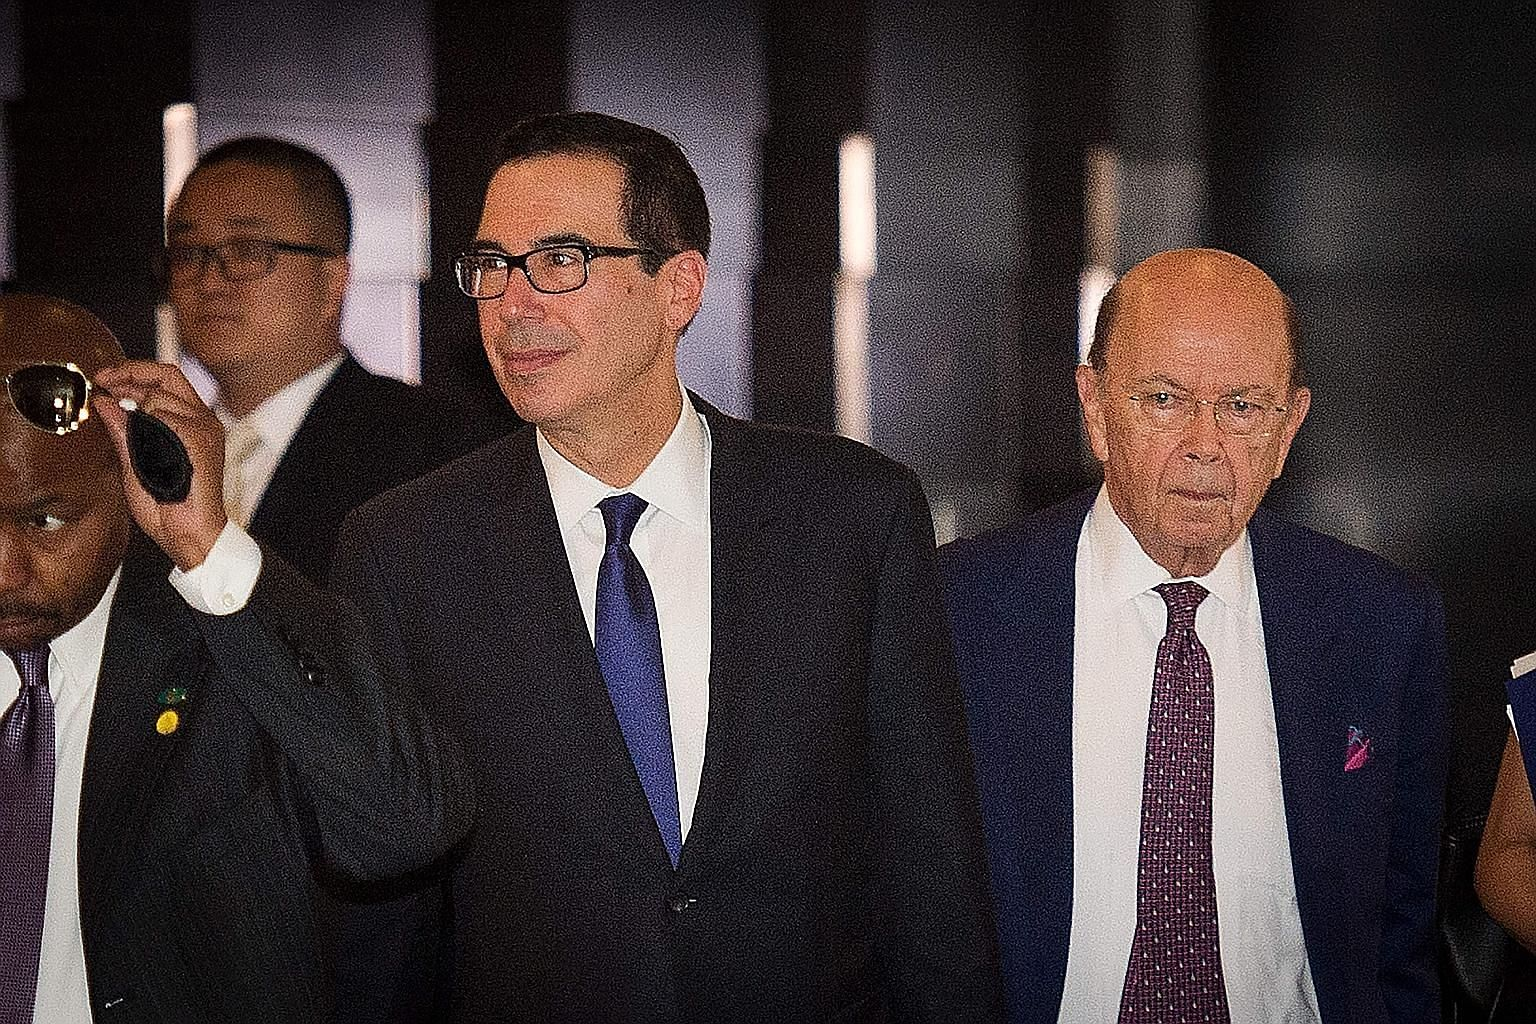 US Treasury Secretary Steven Mnuchin (far left) and Commerce Secretary Wilbur Ross in Beijing yesterday. The US delegation was in China to soothe trade tensions after both sides threatened to slap additional tariffs worth billions of dollars on each